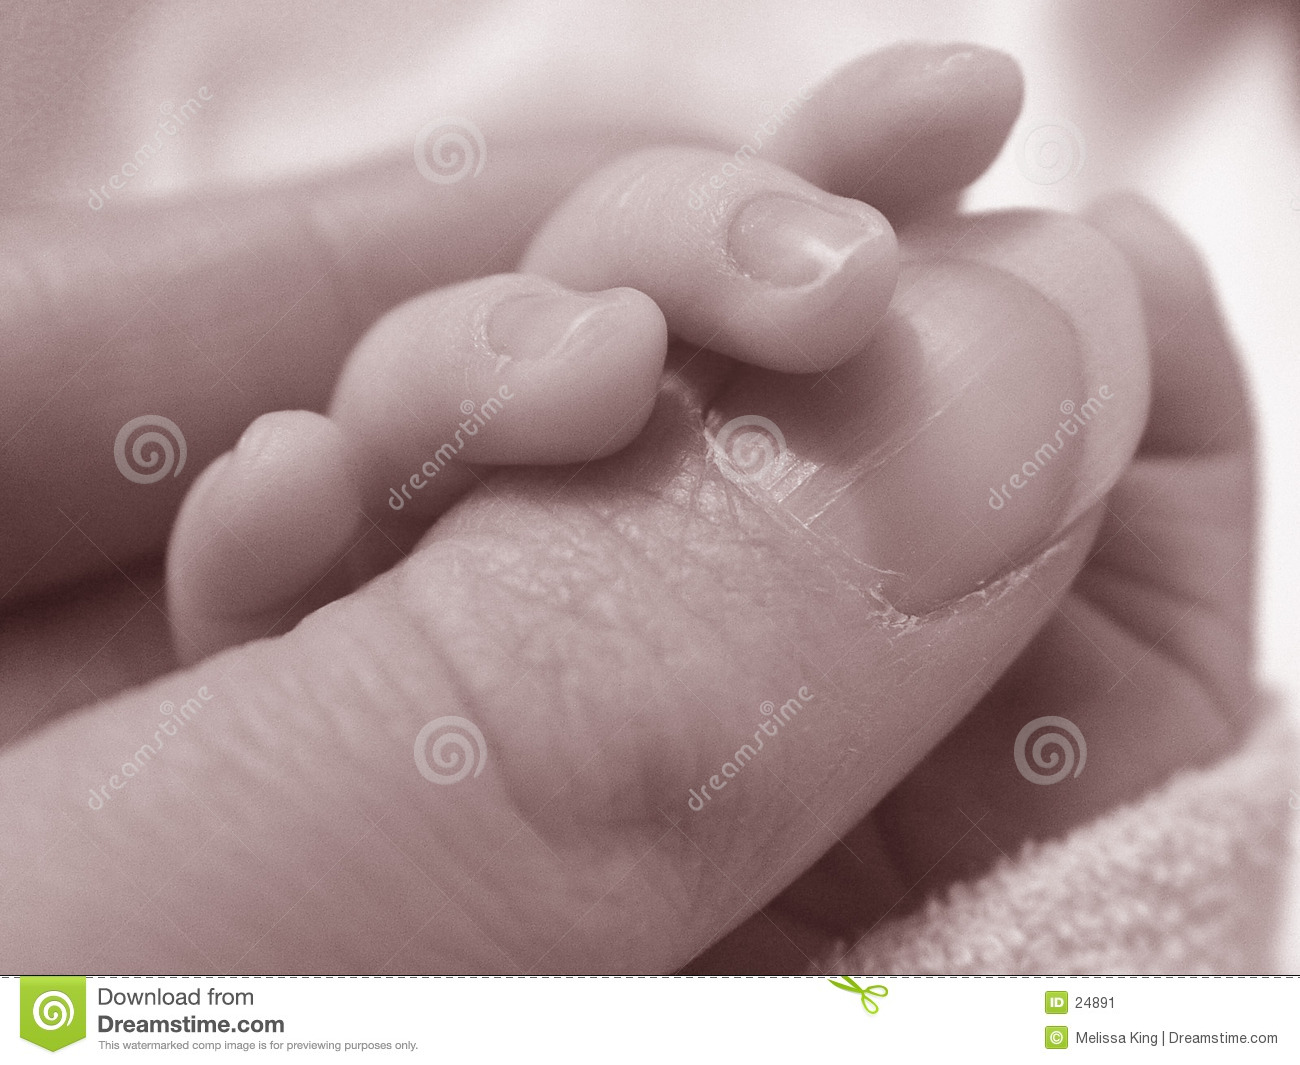 Baby holding ladies thumb